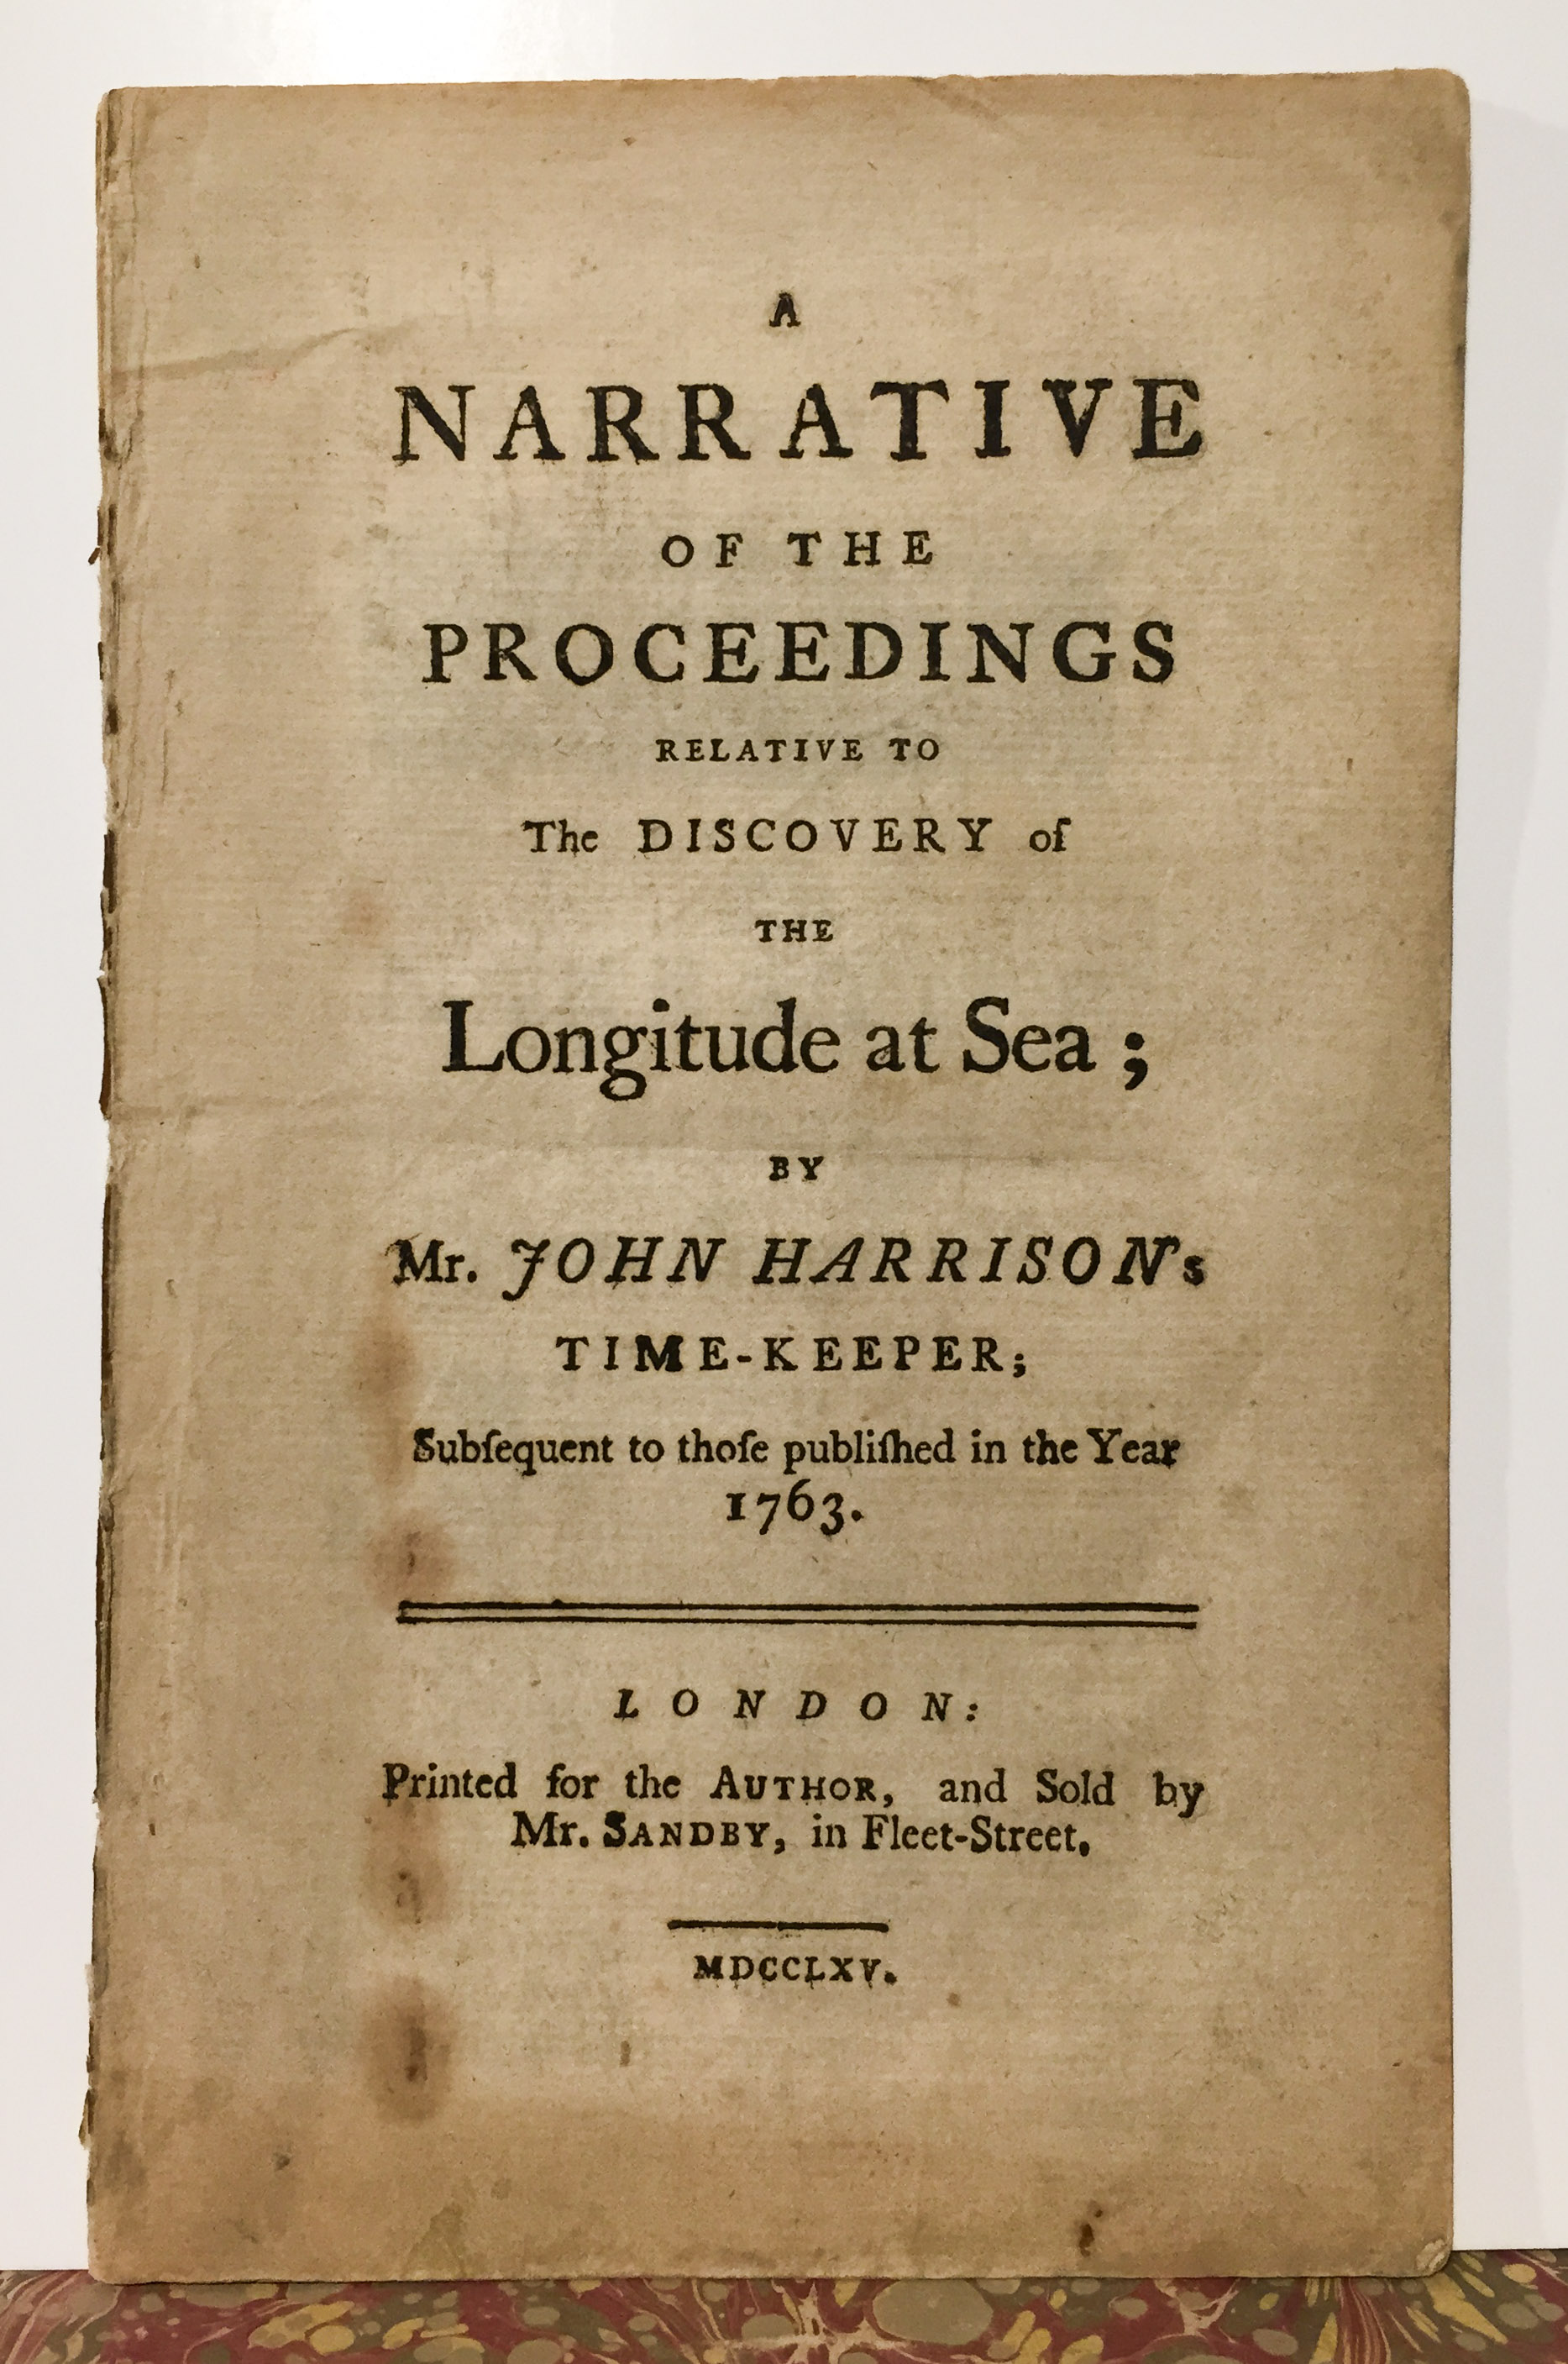 Harrison. Discovery of Longitude